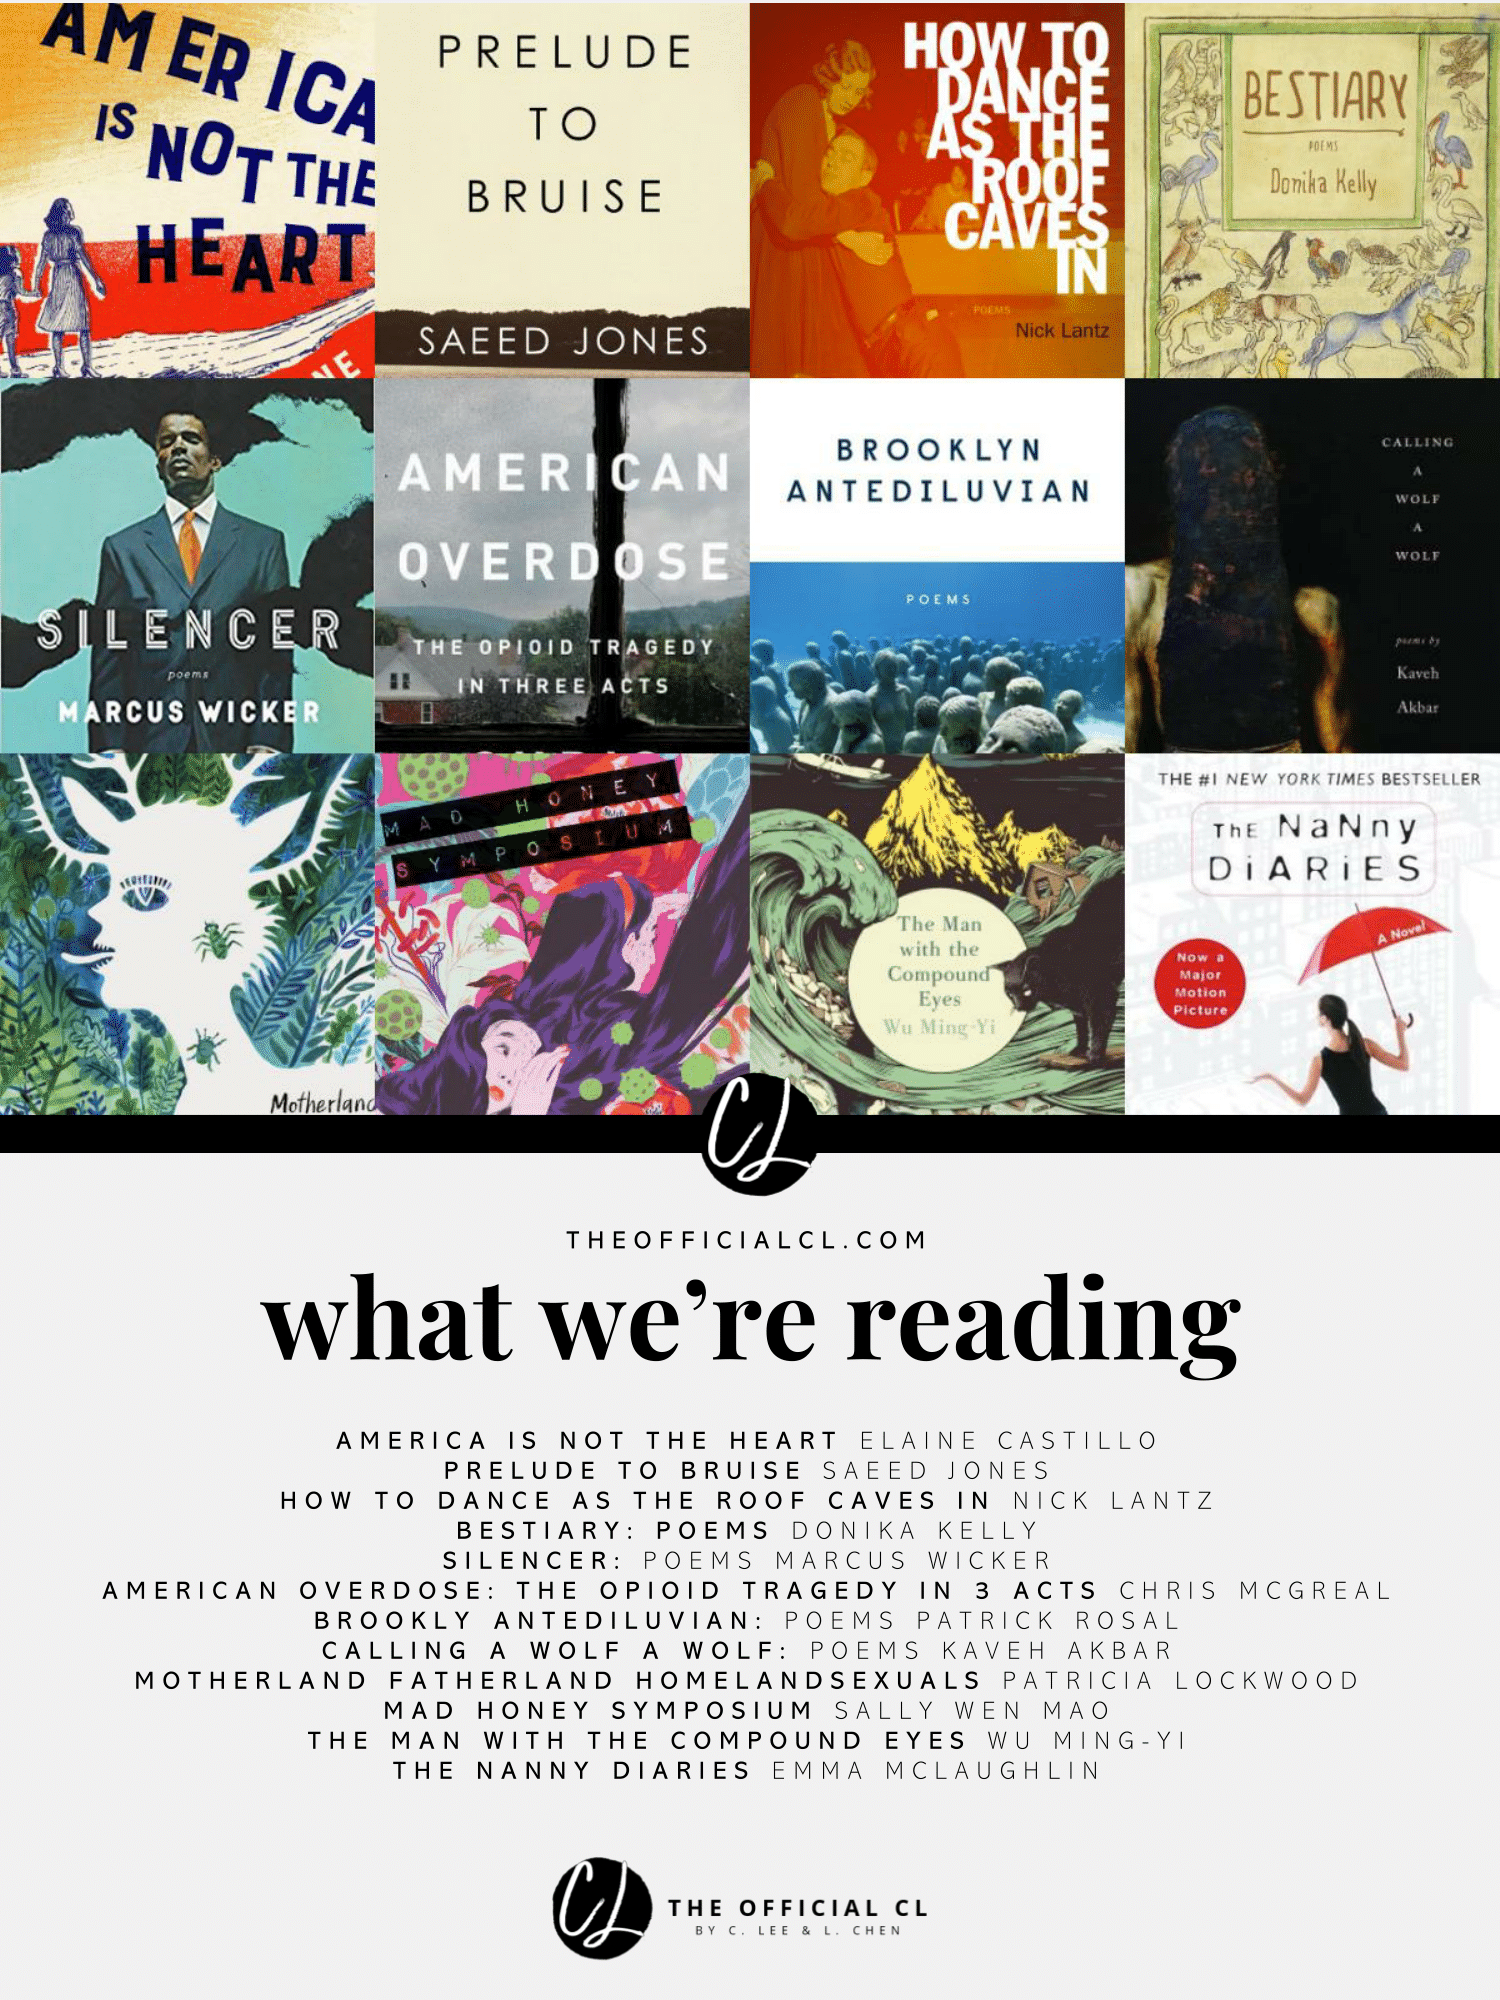 The books we're reading and loving! Reading, Bruises